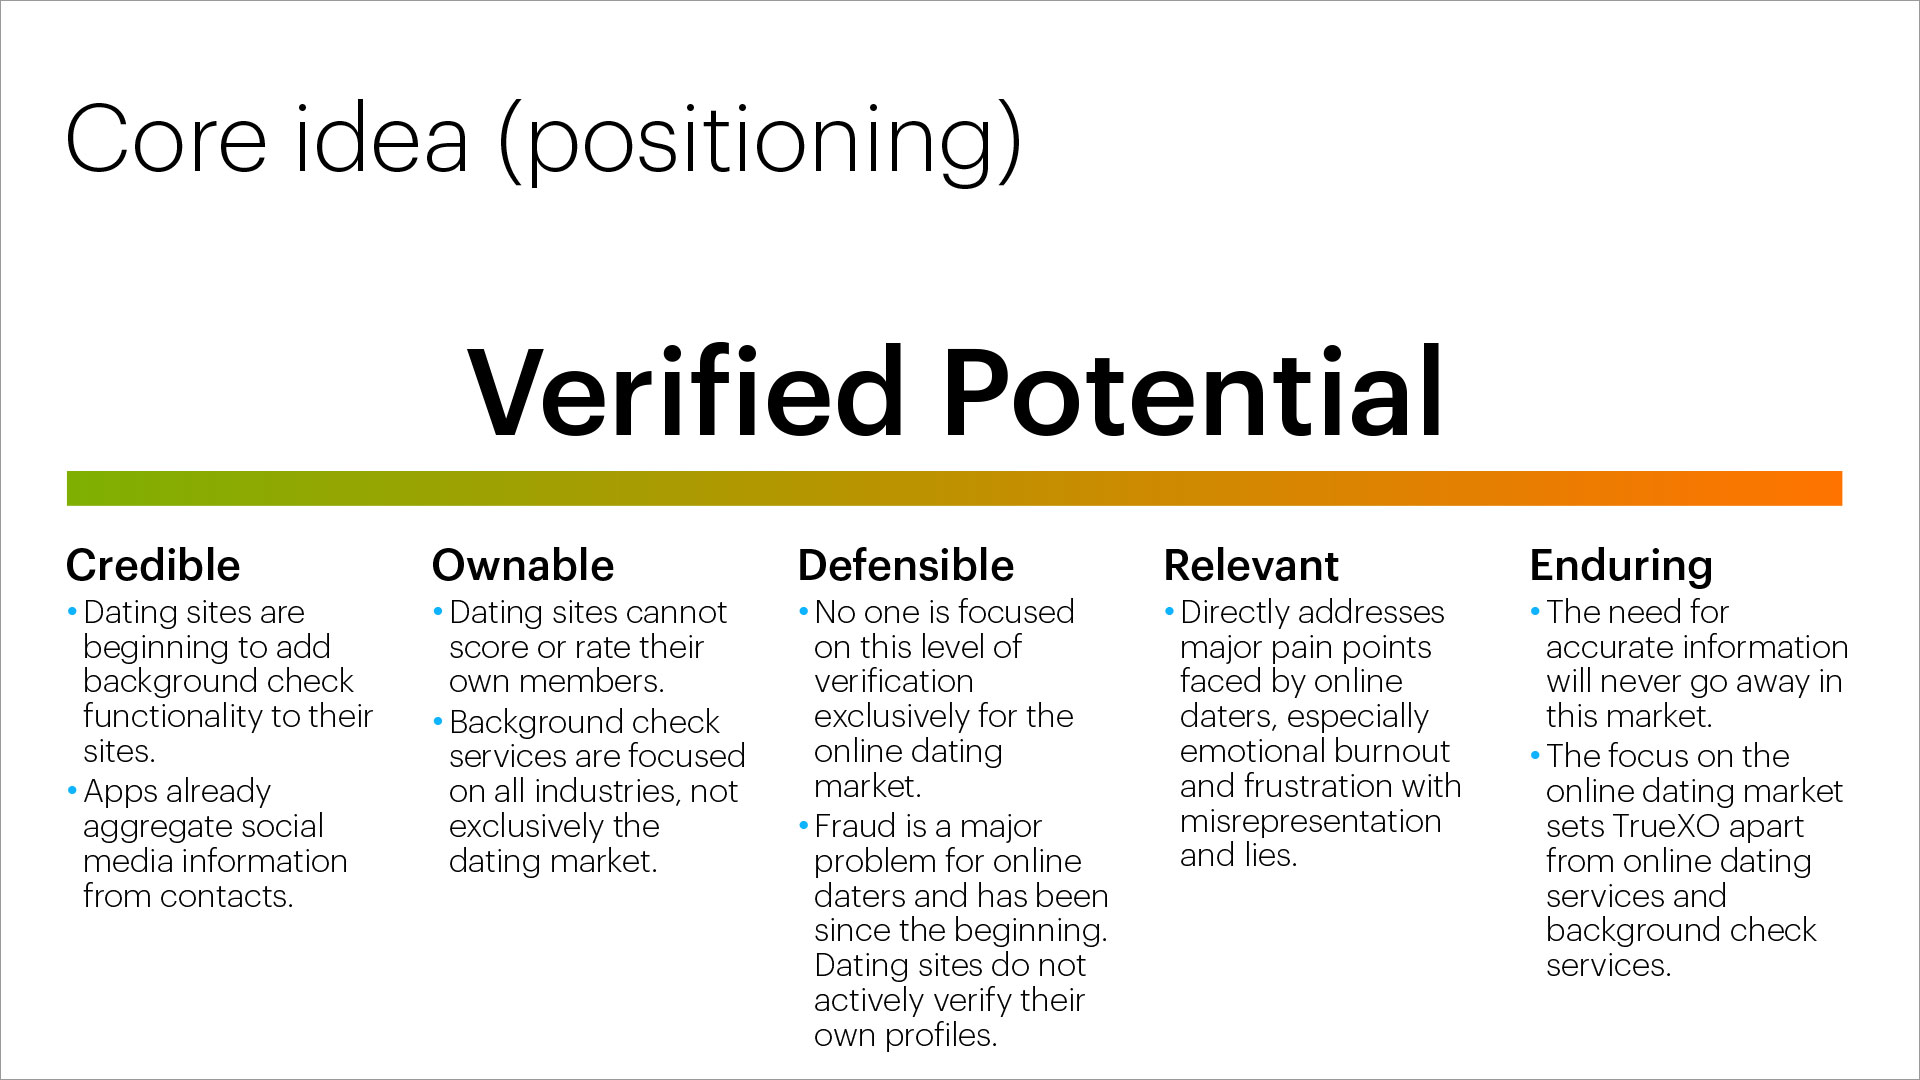 bTru positioning statement: Verified Potential. Analysis of the uniqueness and durability of the positioning statement.